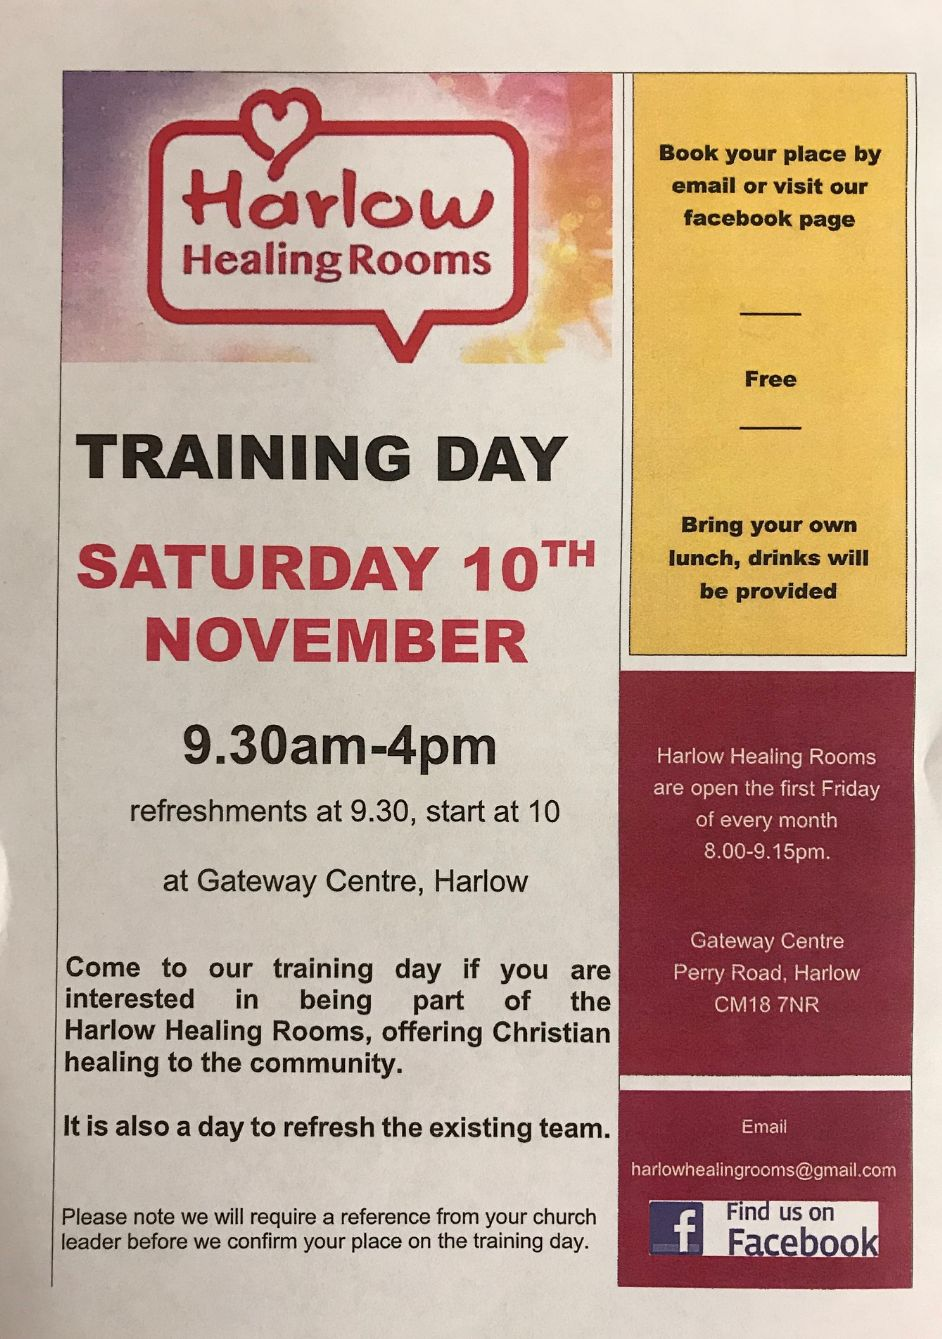 Harlow Healing Rooms